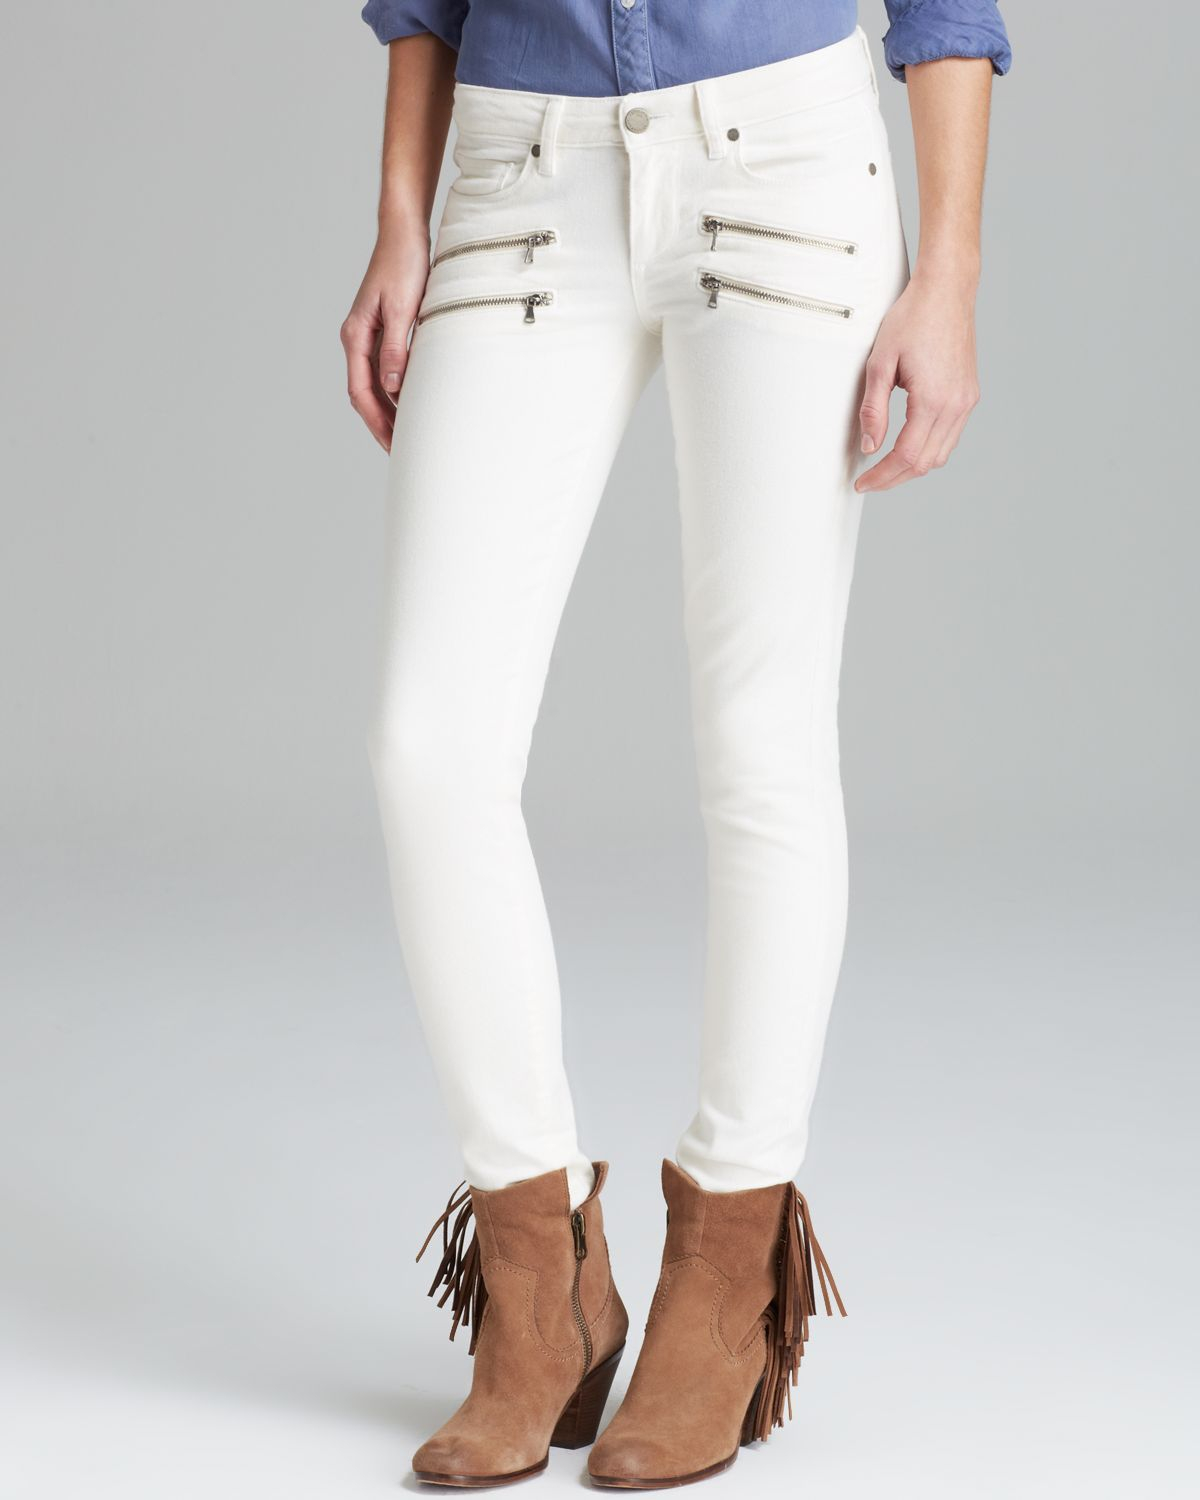 Paige Jeans Edgemont Ultra Skinny in Vanilla Bean in White | Lyst